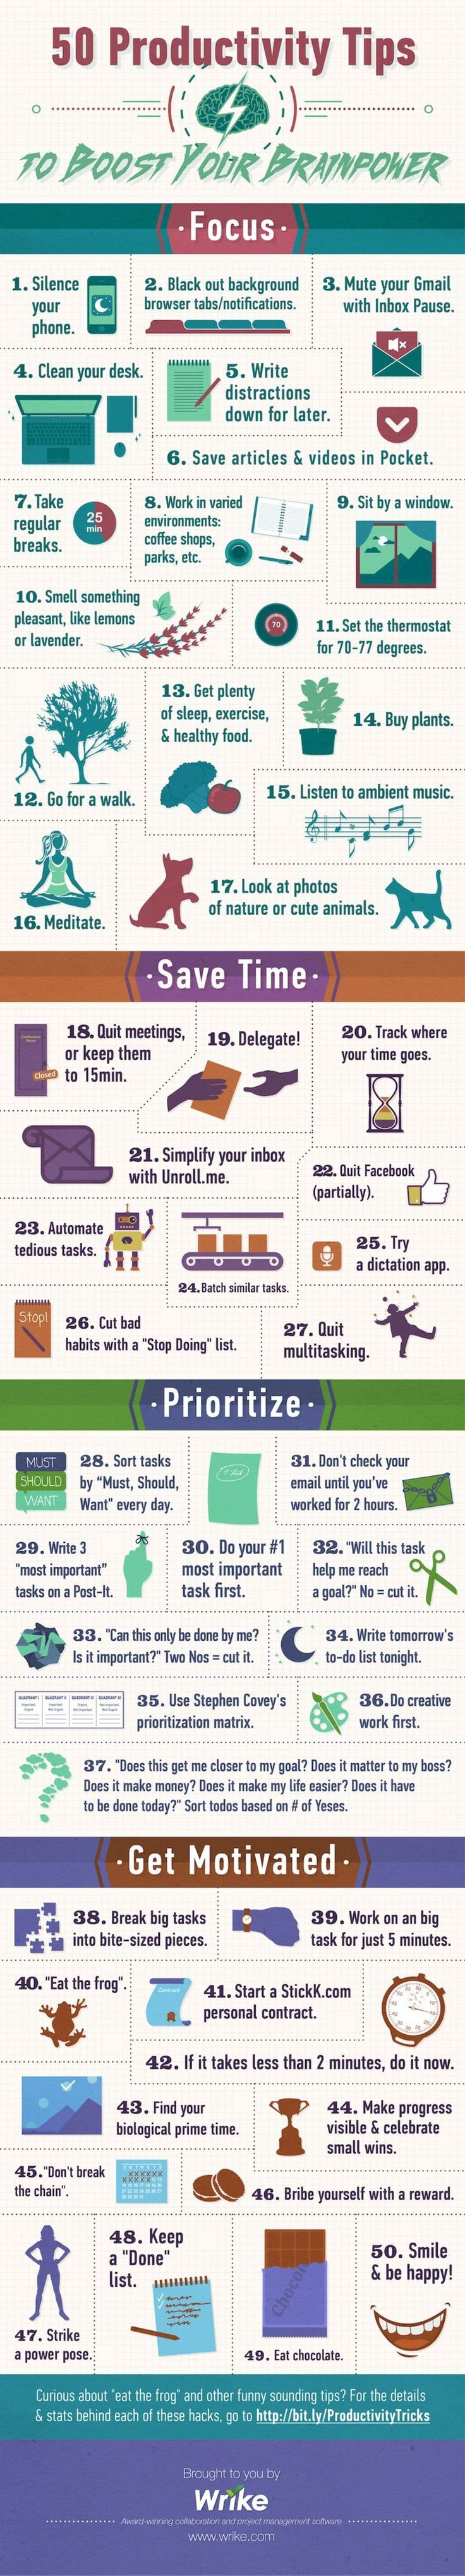 50 Productivity Tips to Boost your Brainpower (via @softandapps):